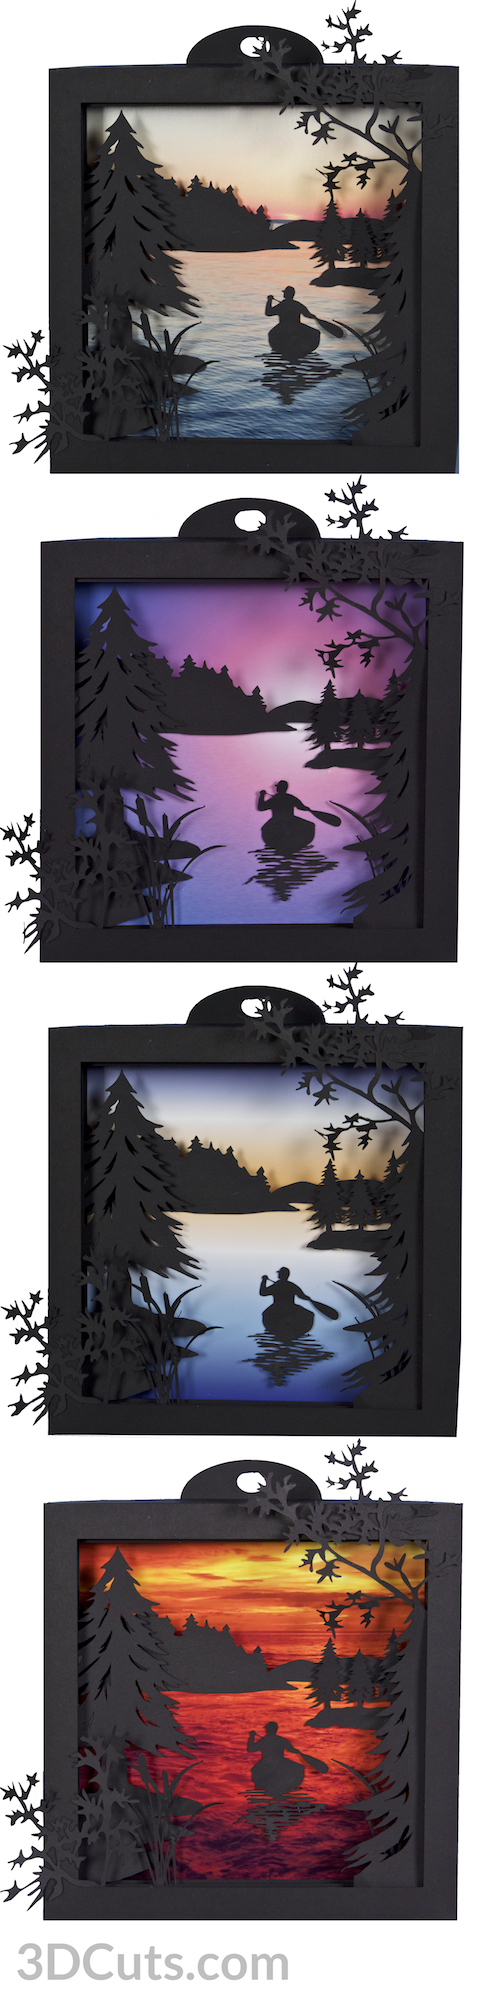 Canoeing Shadow Boxes designed by Marji Roy of 3dcuts.com. Constructed in card shock using a Silhouette or Cricut cutting machine.